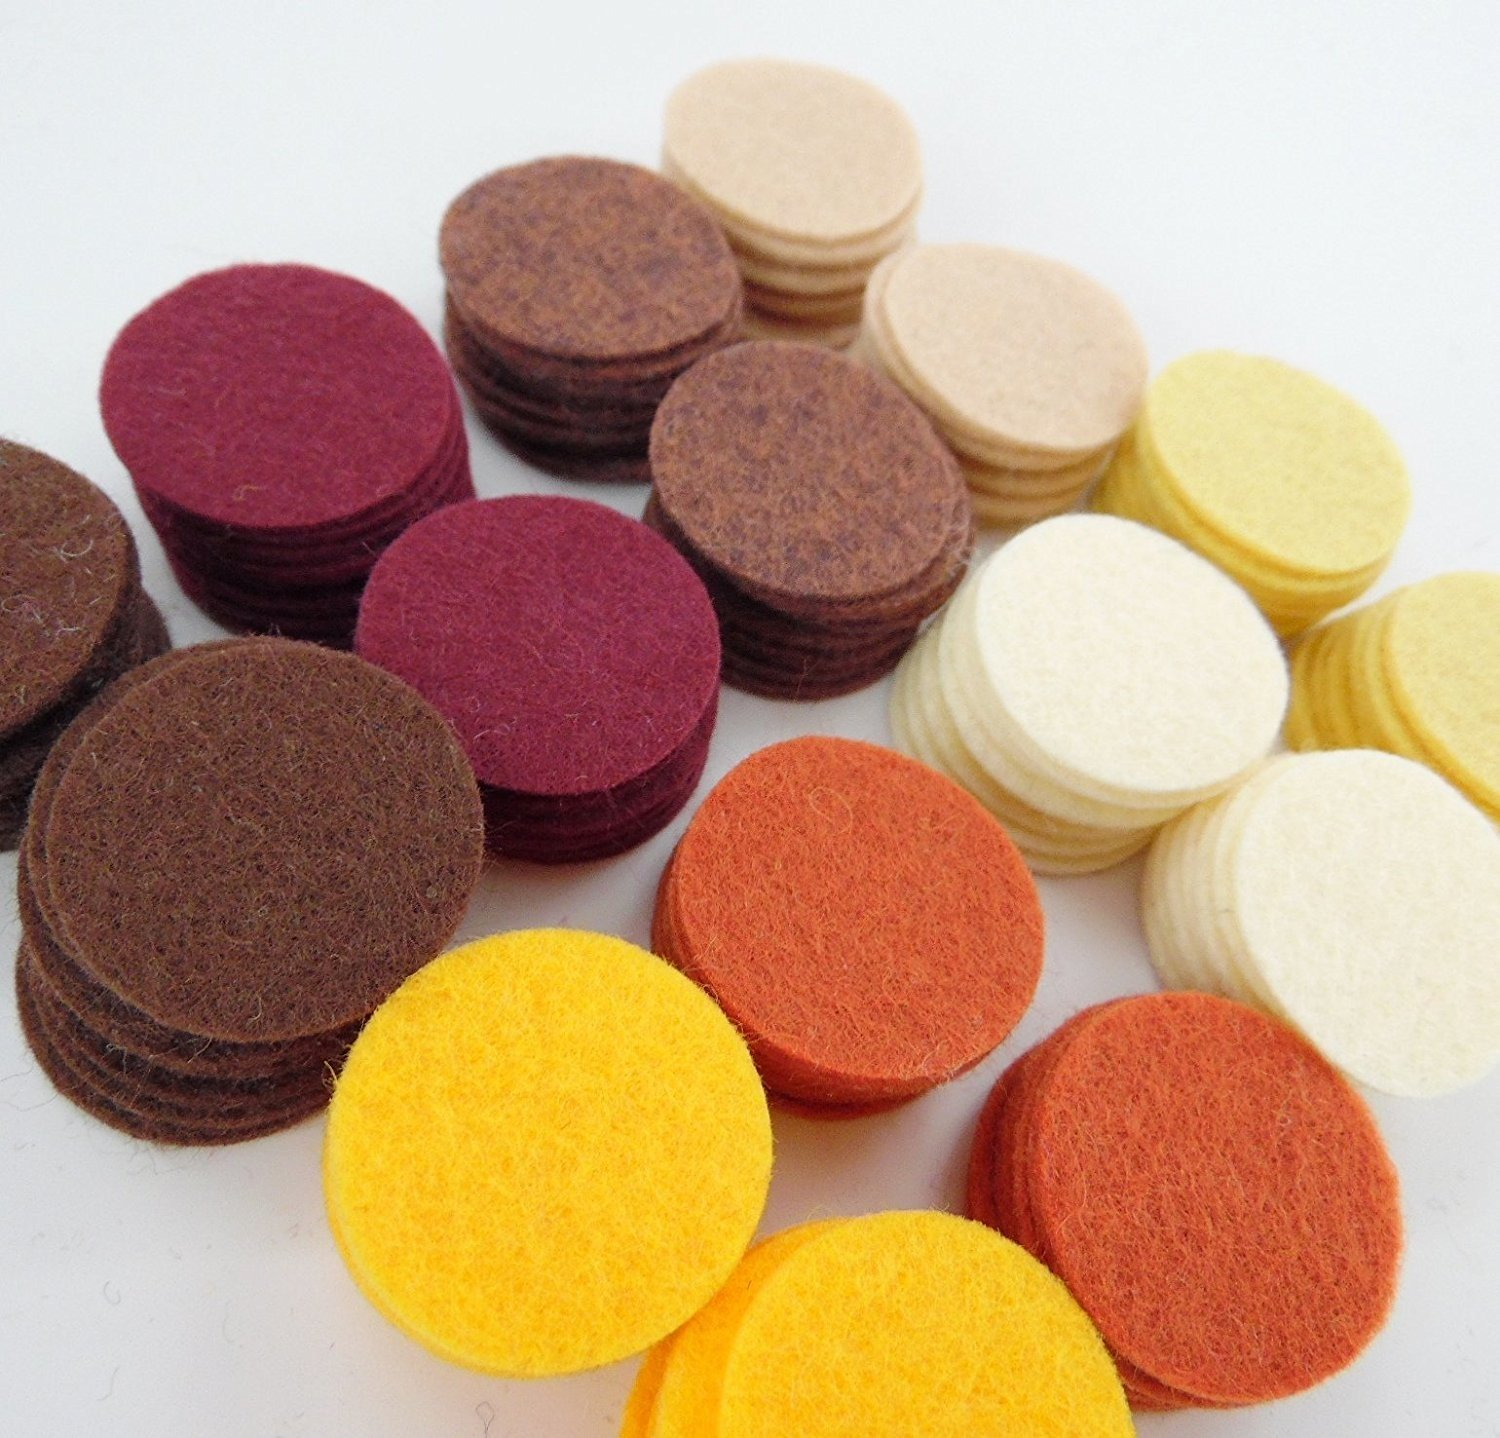 128 Wool Blend Felt 1' Circles -Kitchen Spices Colors - Made in USA - OTR Felt